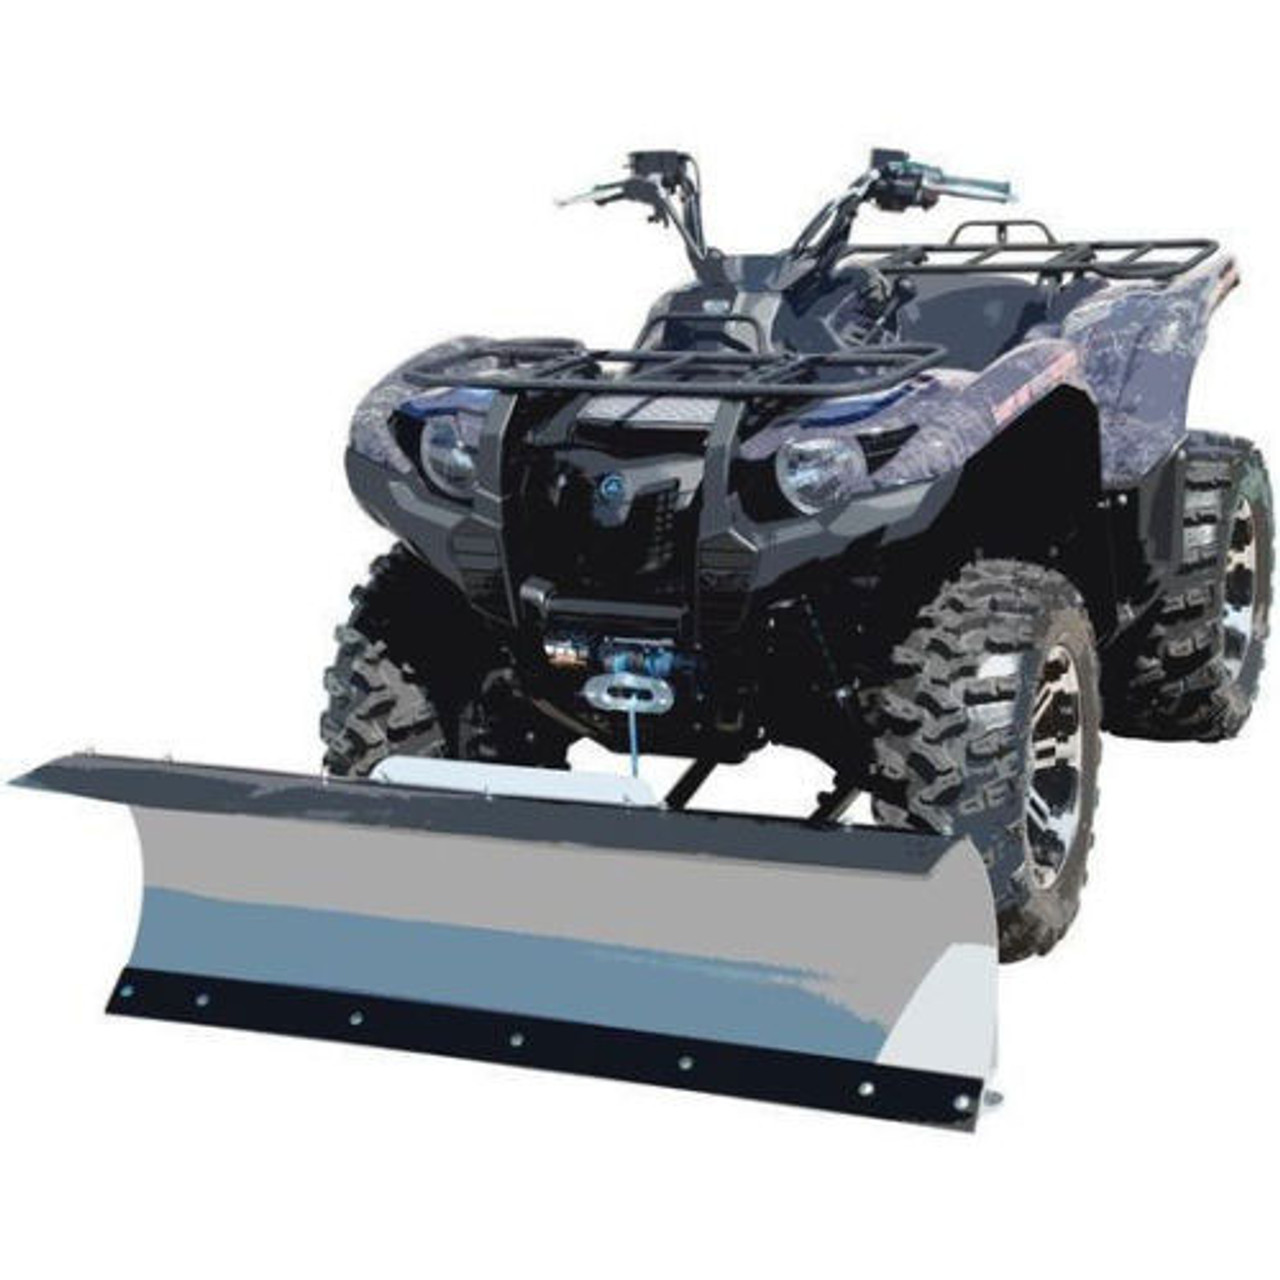 small resolution of snow plow packages for polaris atv models select plow blade plow mount winch options westendmotorsports com